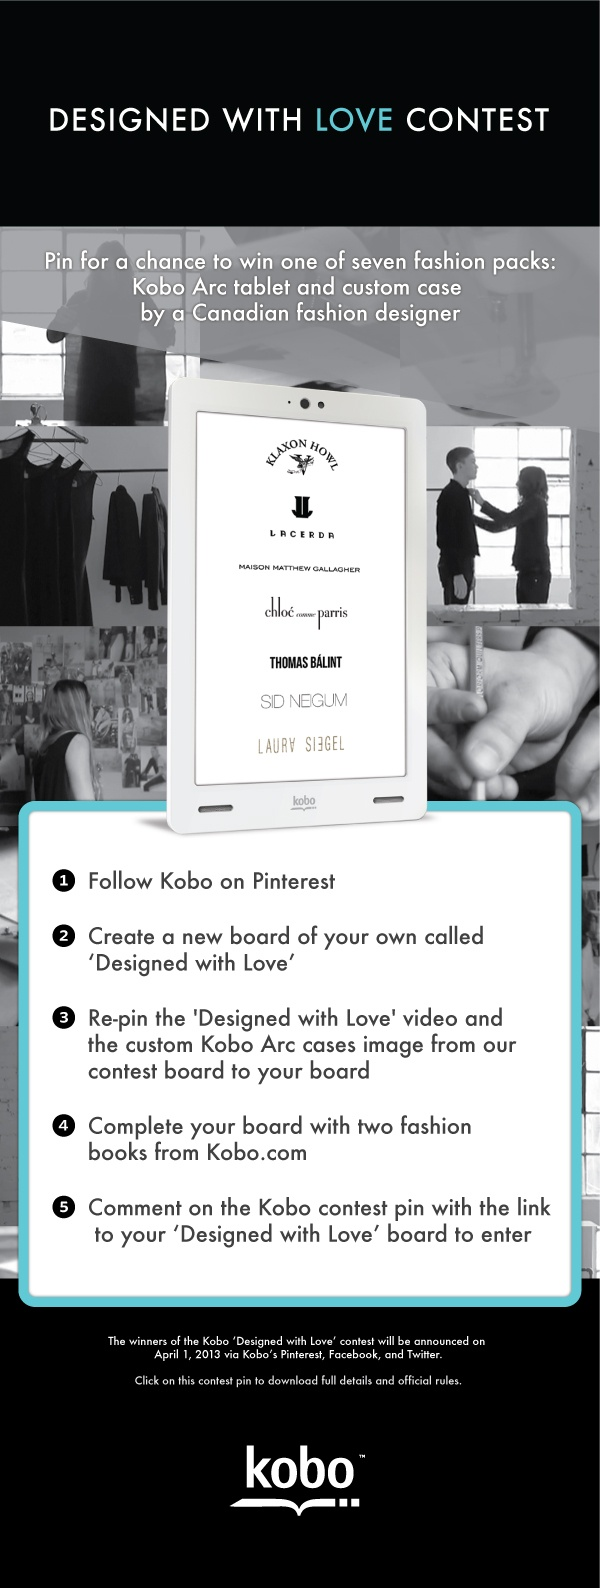 Share Your Passion for Fashion with #Kobo's Designed with Love Pinterest Contest! The contest is open only to legal residents of the 48 contiguous United States, District of Columbia, and Canada (excluding Quebec). Entry deadline - March 29, 2013.